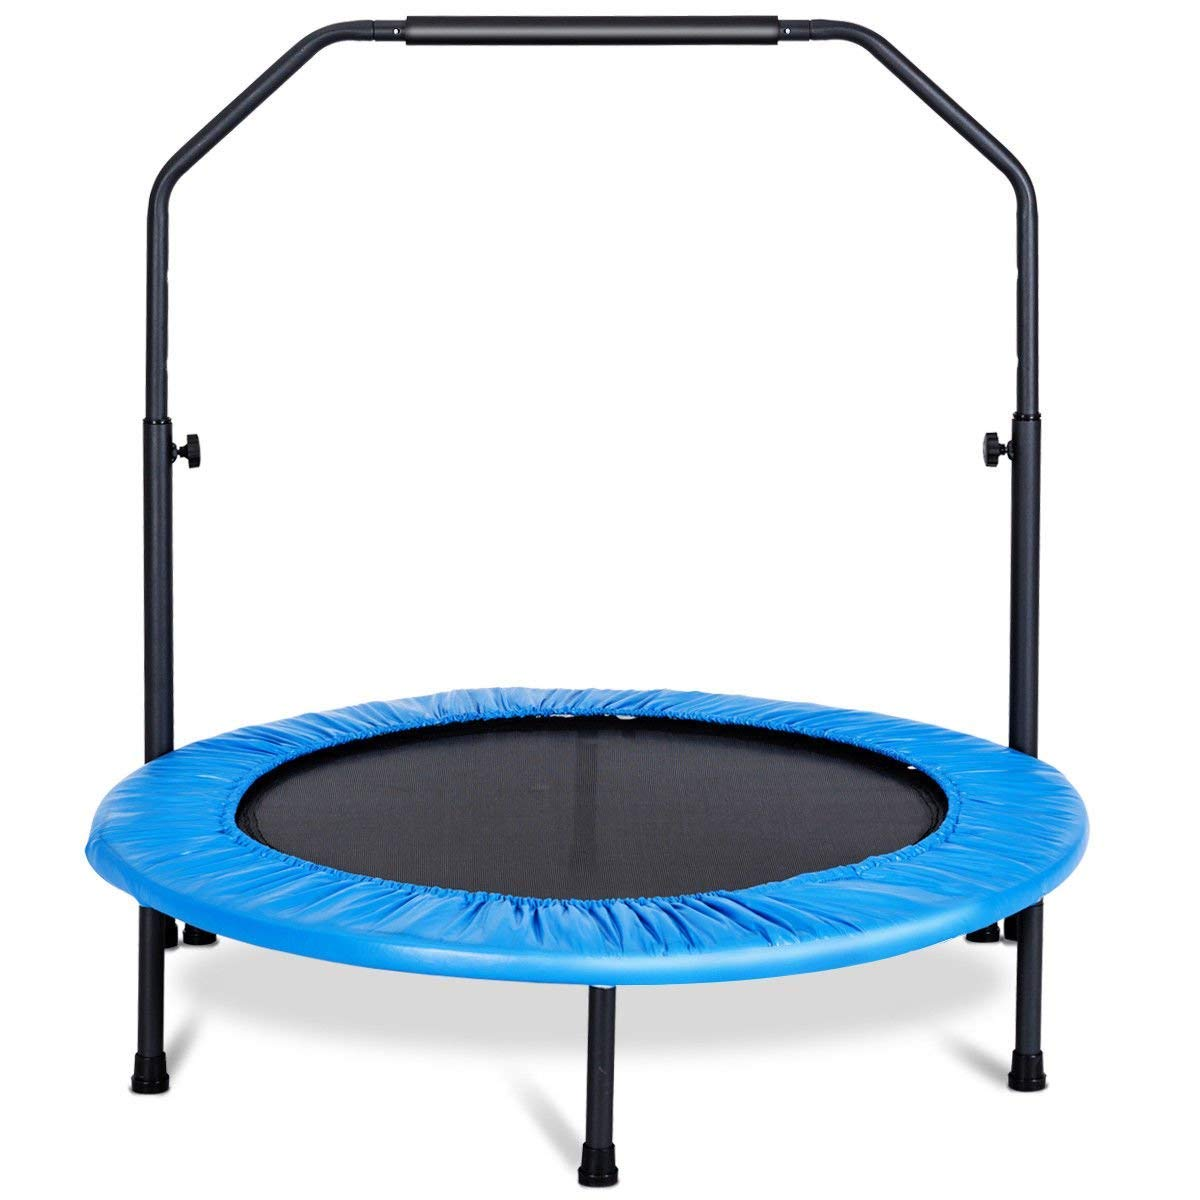 GYMAX Mini Trampoline, Rebounder Exercise Trampoline for Outdoor Indoor Fitness Workout, with Handle Rail by GYMAX (Image #2)